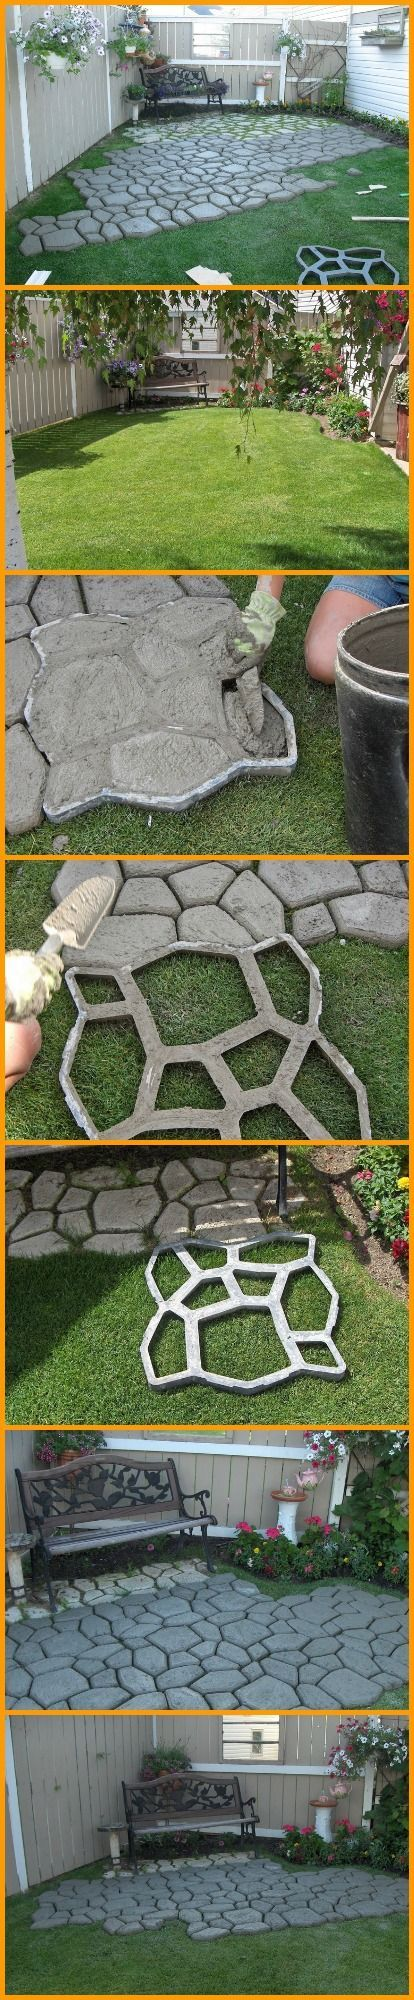 >>  A concrete stencil can do magic in your yard! This DIY paved patio is a gre...